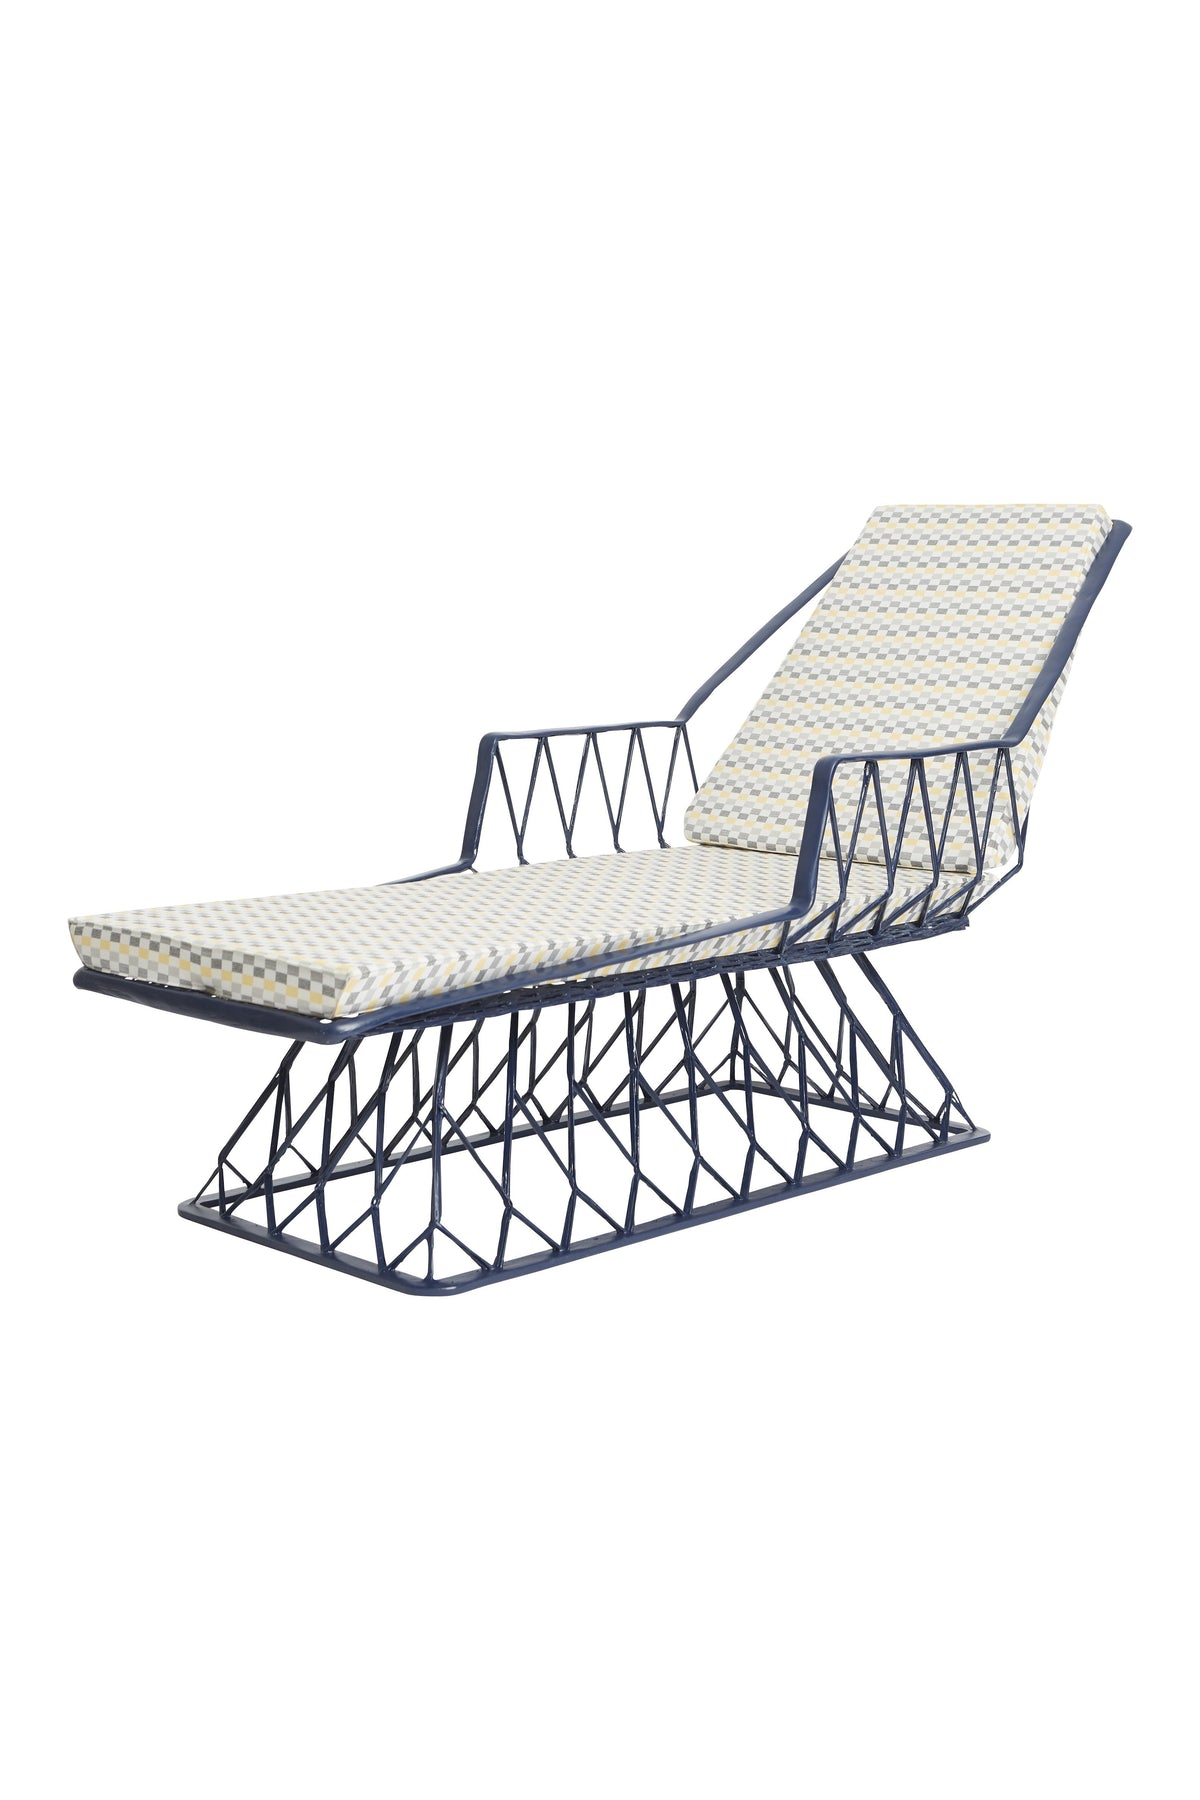 Rhombus 108 Lounger-Lobster's Day-Contract Furniture Store